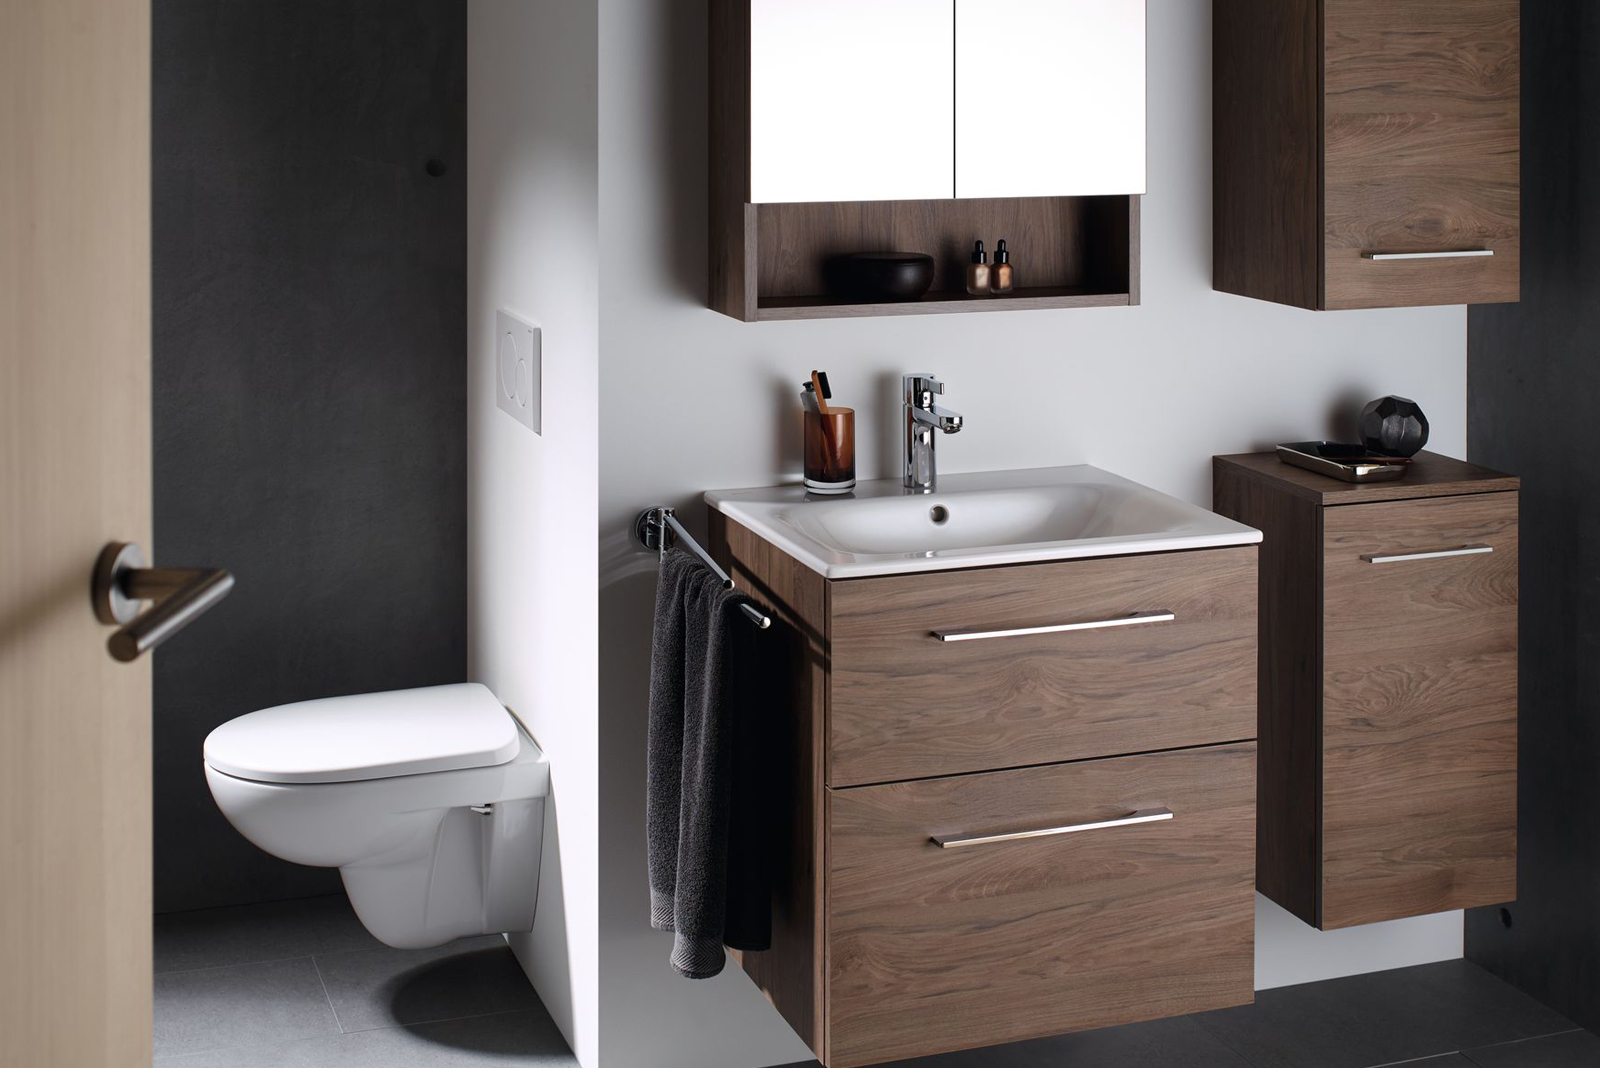 Creating a space-saving, design-led bathroom with Geberit